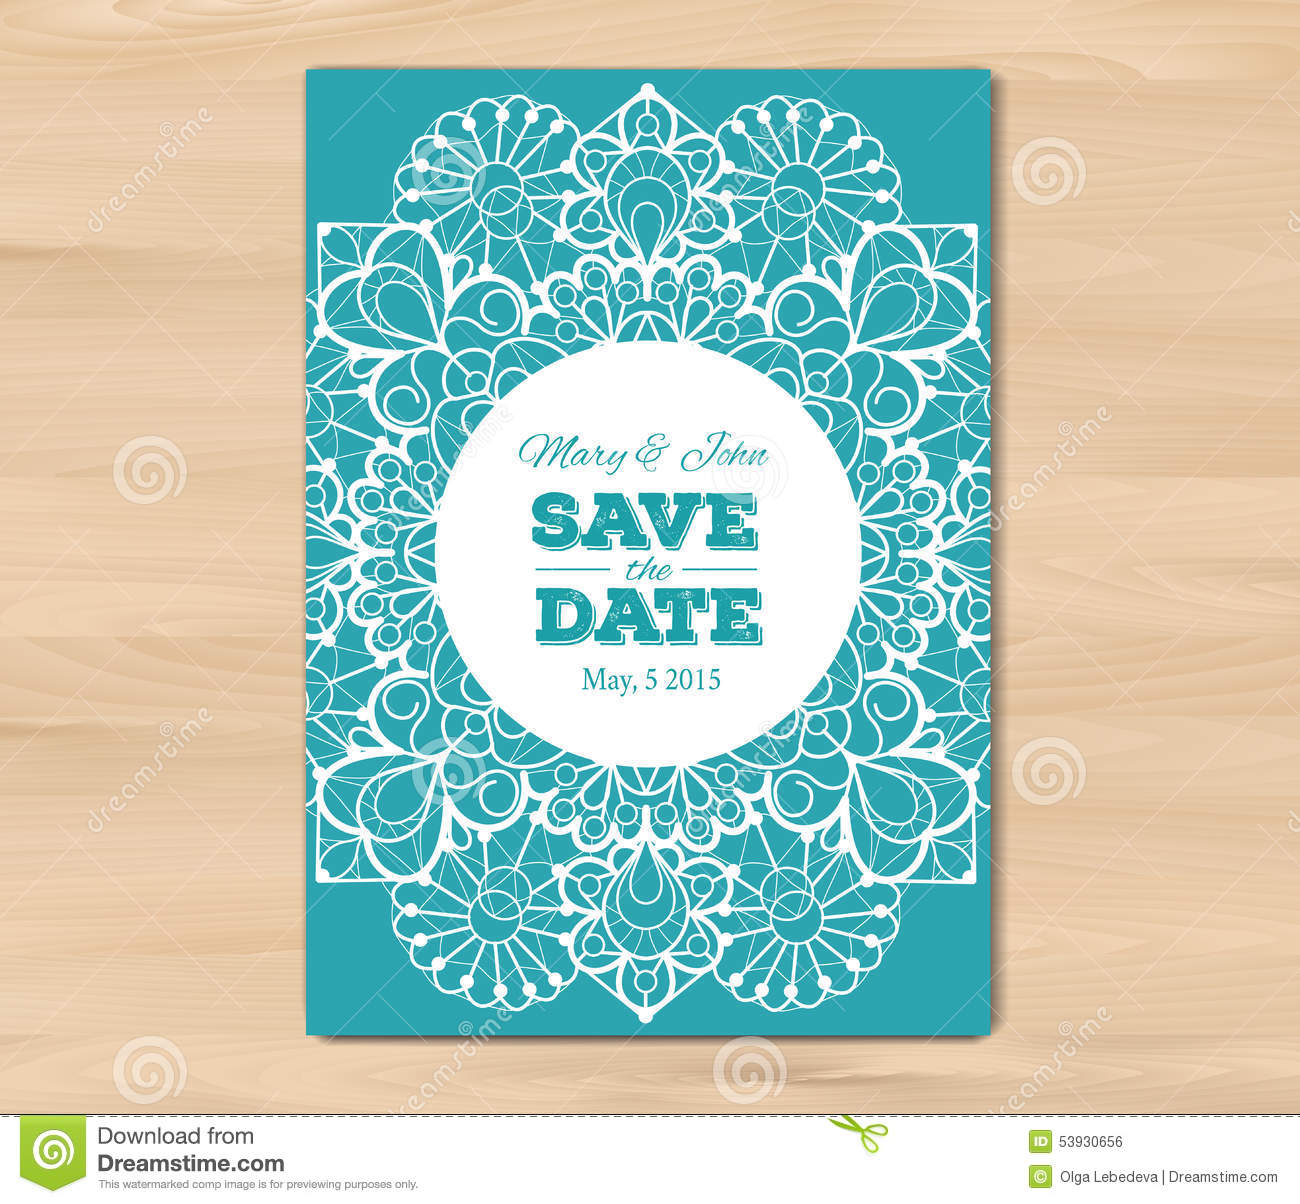 Wedding invitation card template stock vector image for Vintage save the date templates free